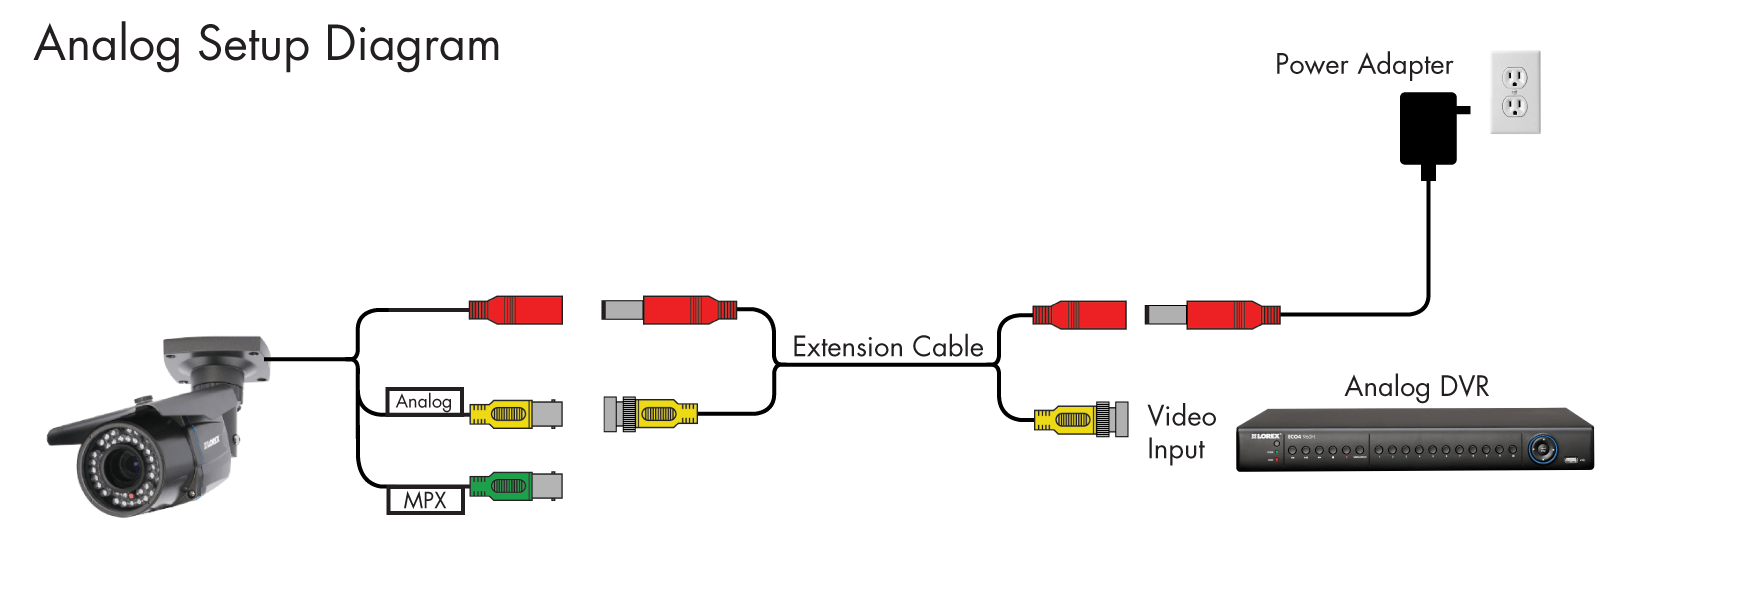 hight resolution of if you are connecting to a 960h analog dvr connect the yellow bnc connector labelled analog to a bnc port on your dvr